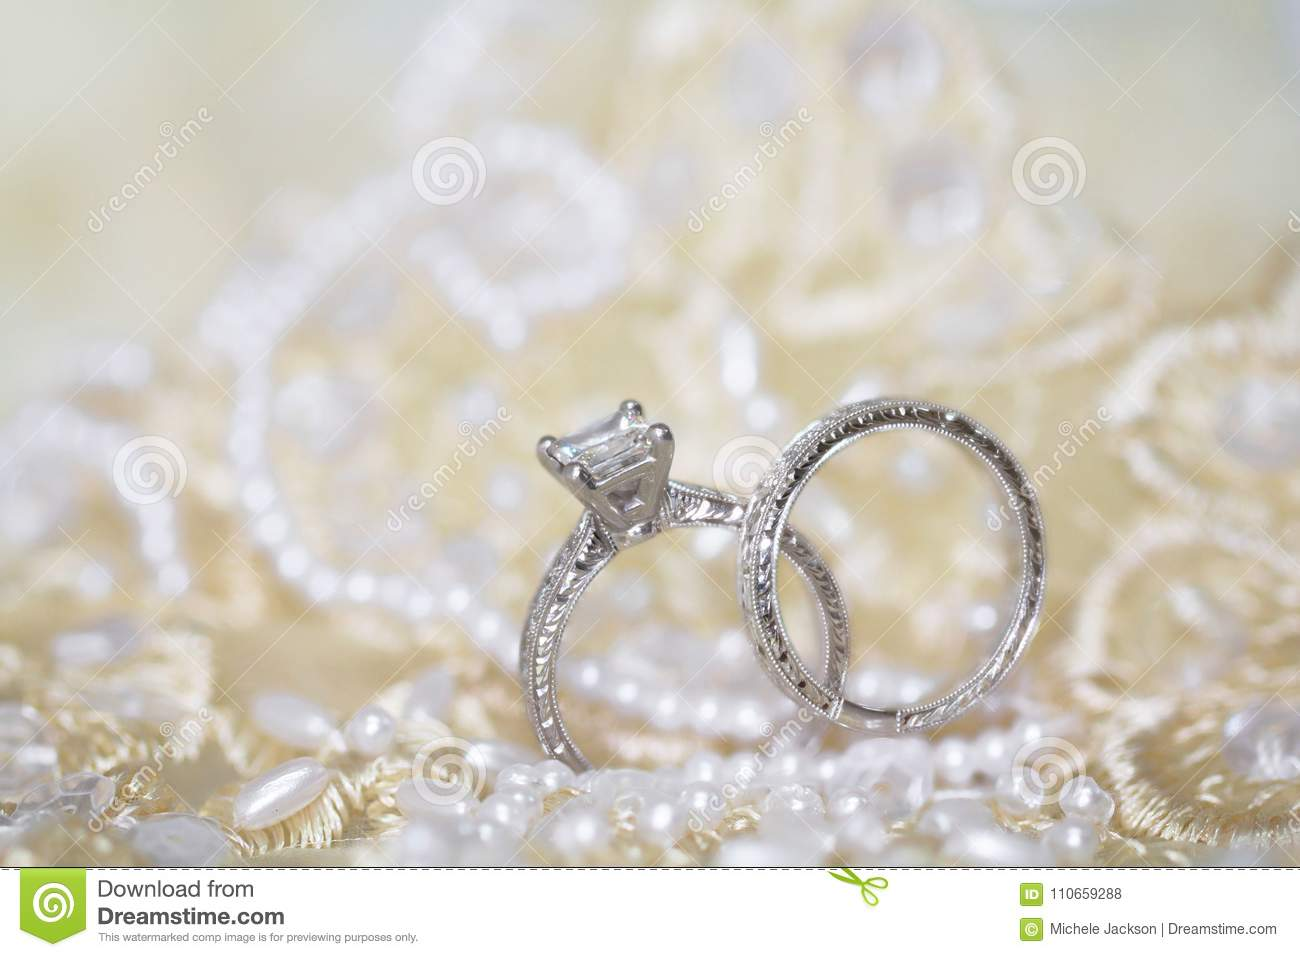 remarkable and wedding pinterest best images on stunning diamond rings engagement engagements